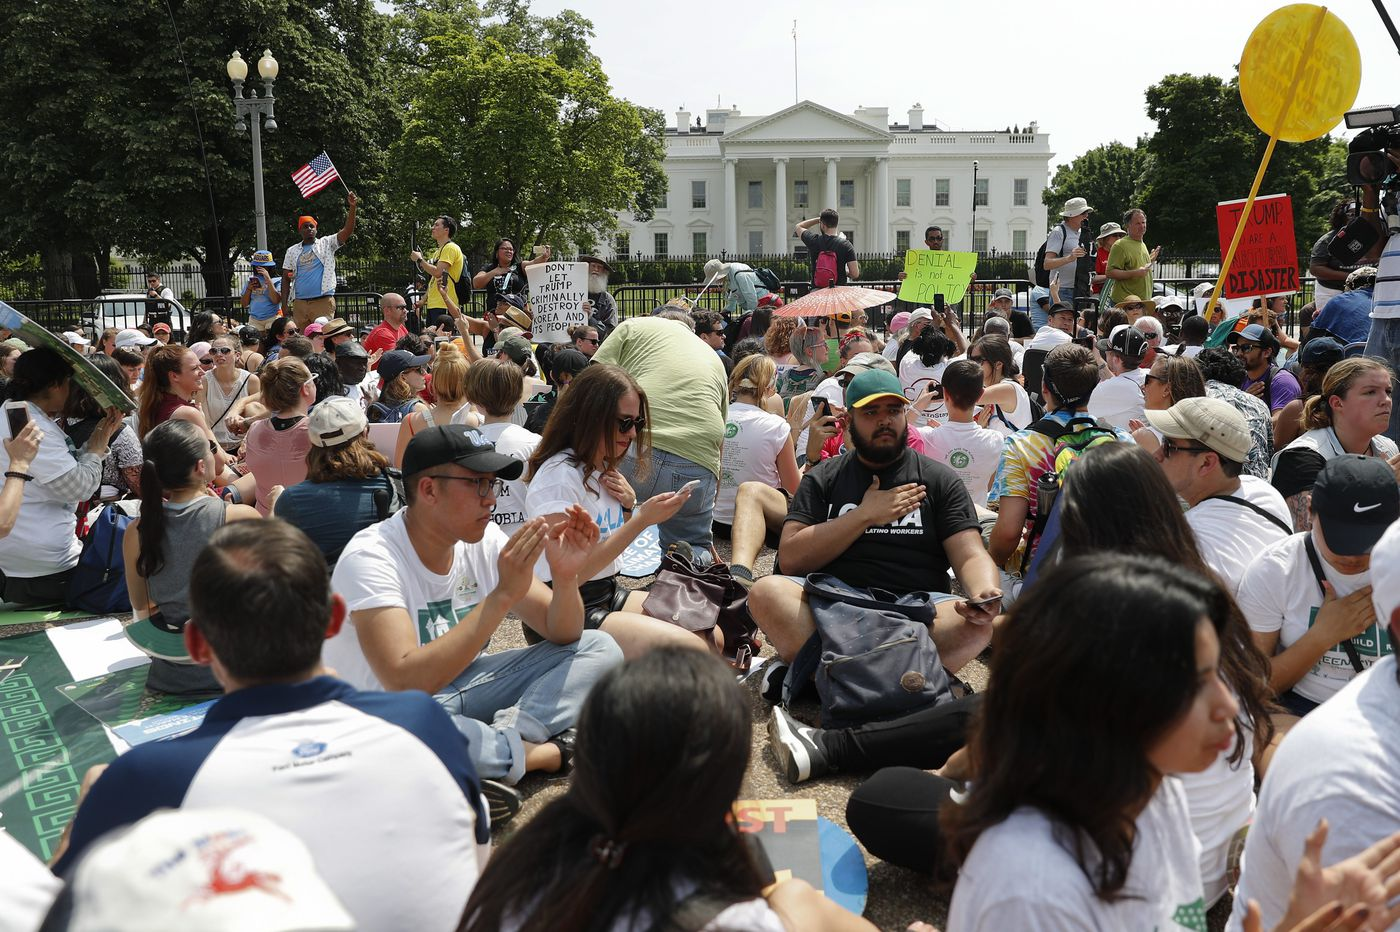 Trump is clamping down on White House protest. Be very afraid of what comes next | Will Bunch